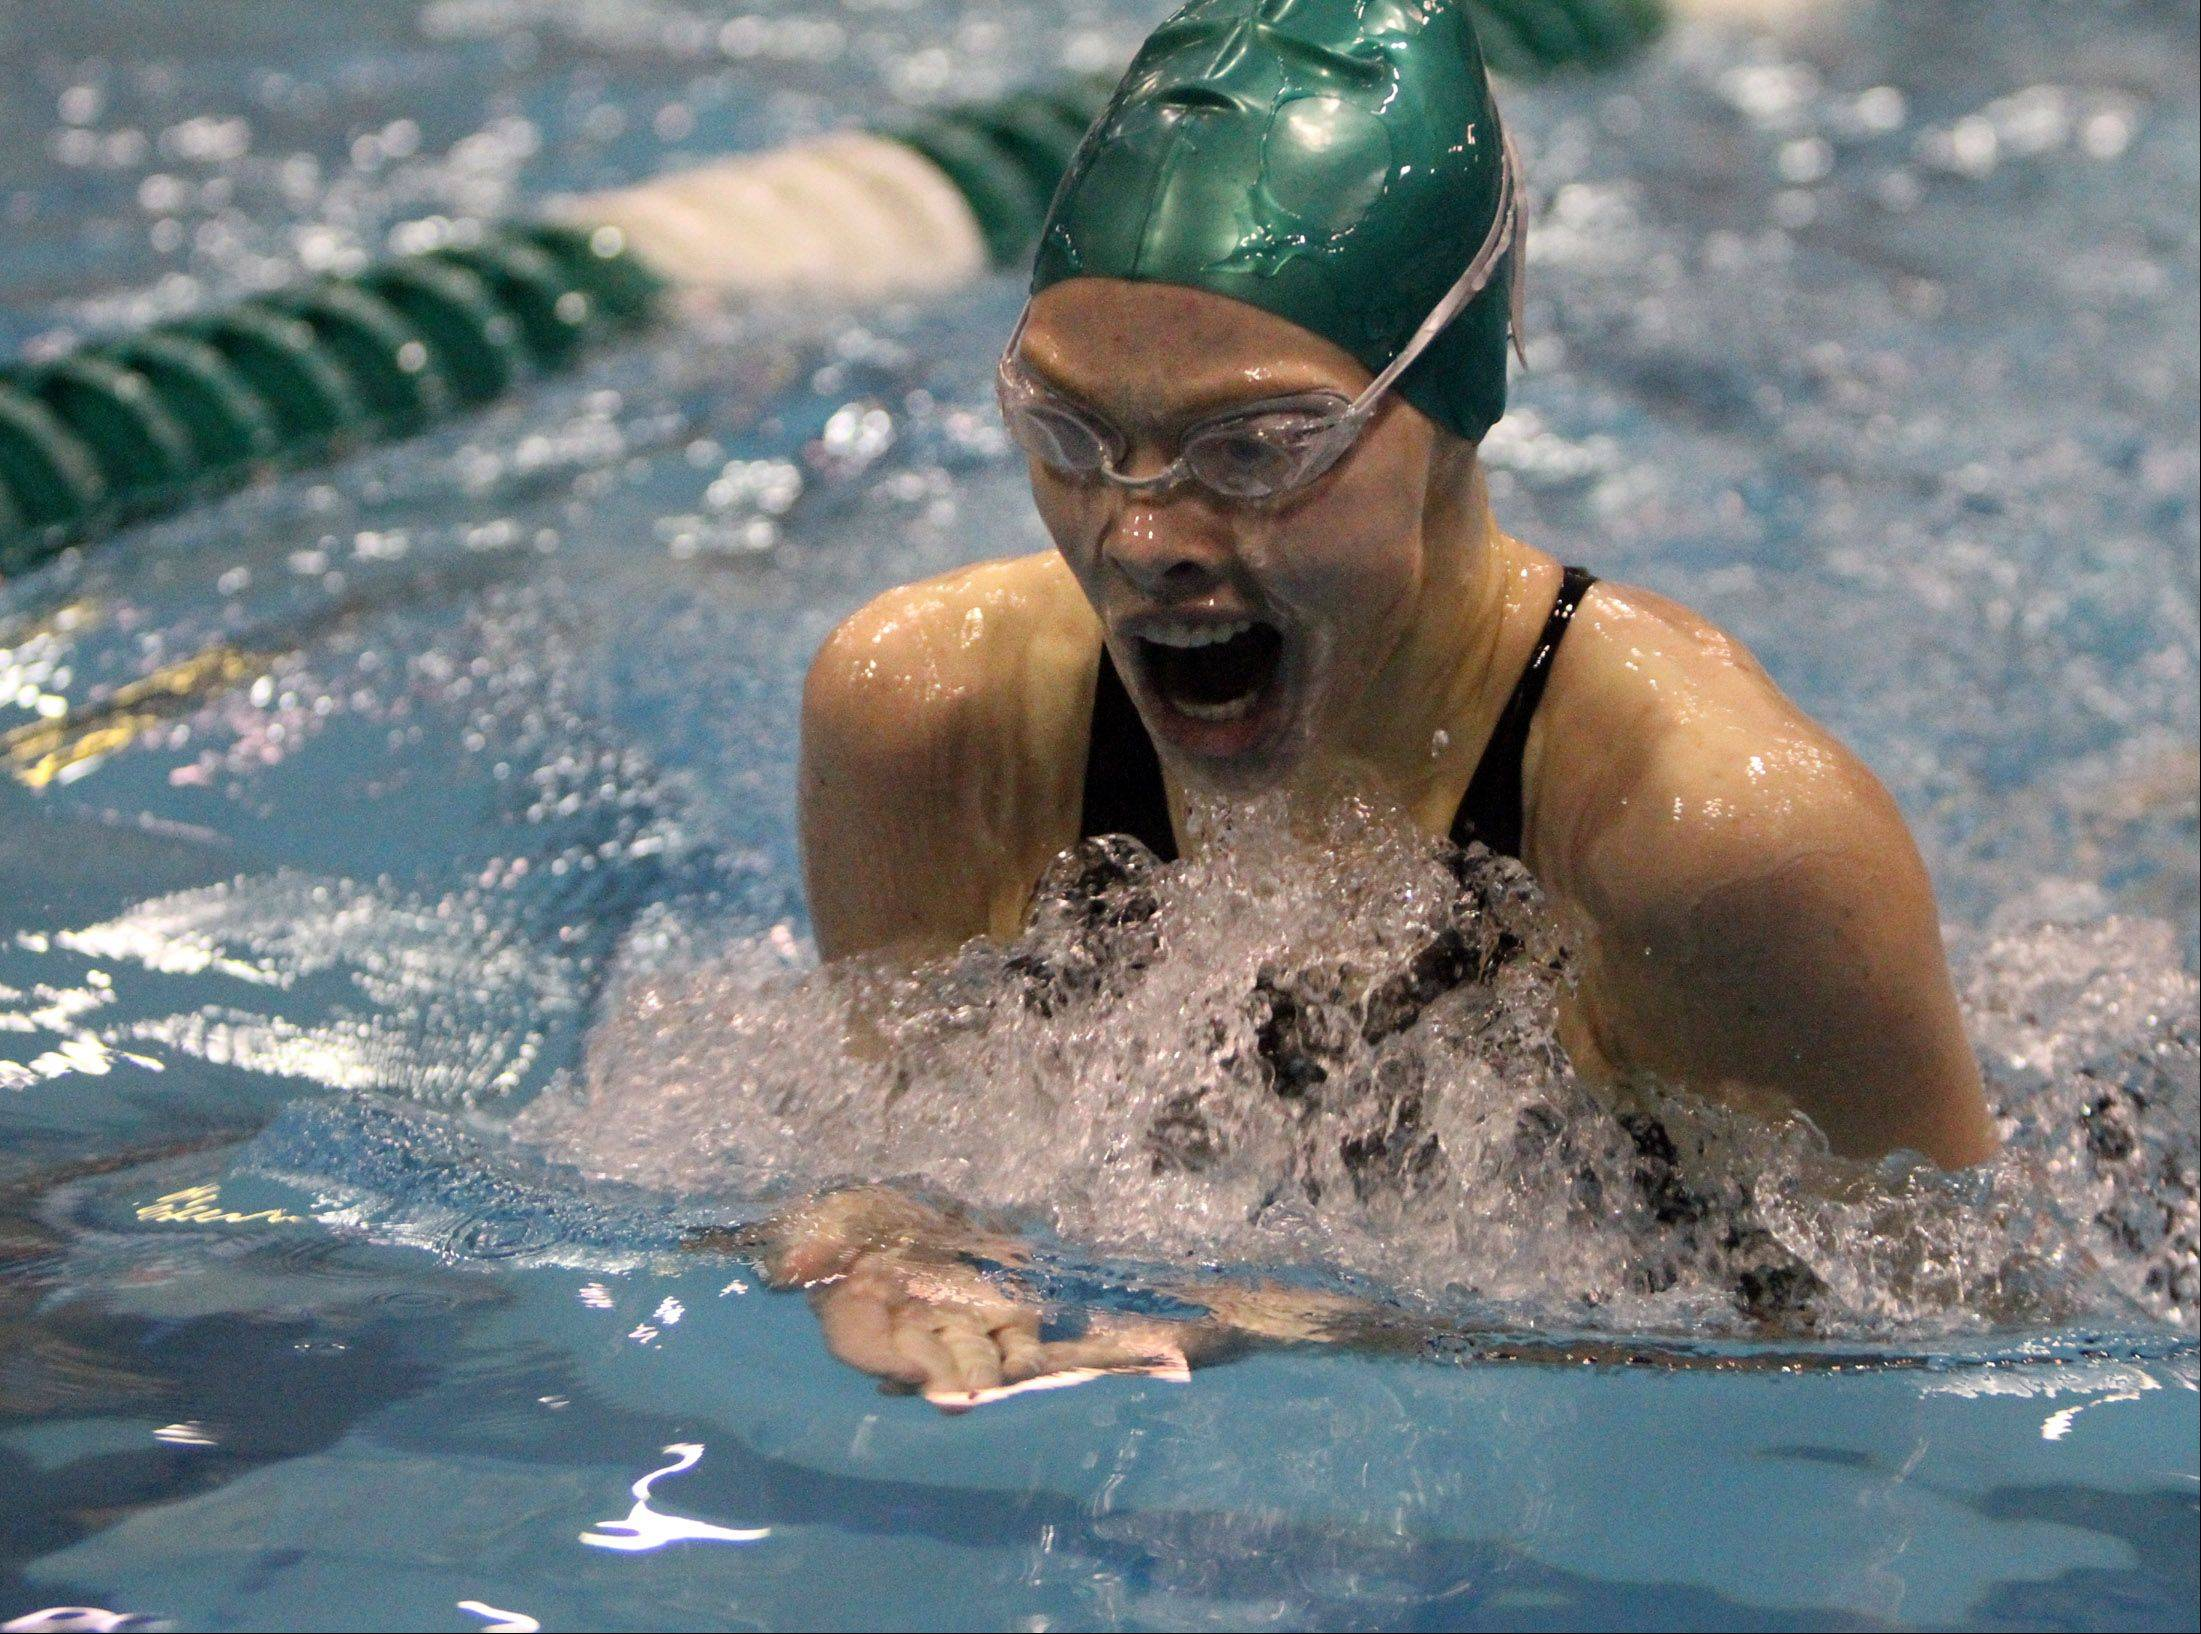 Grayslake Central's Marissa Engel competes in the 200-yard individual medley at the state meet preliminaries in Winnetka on Friday.